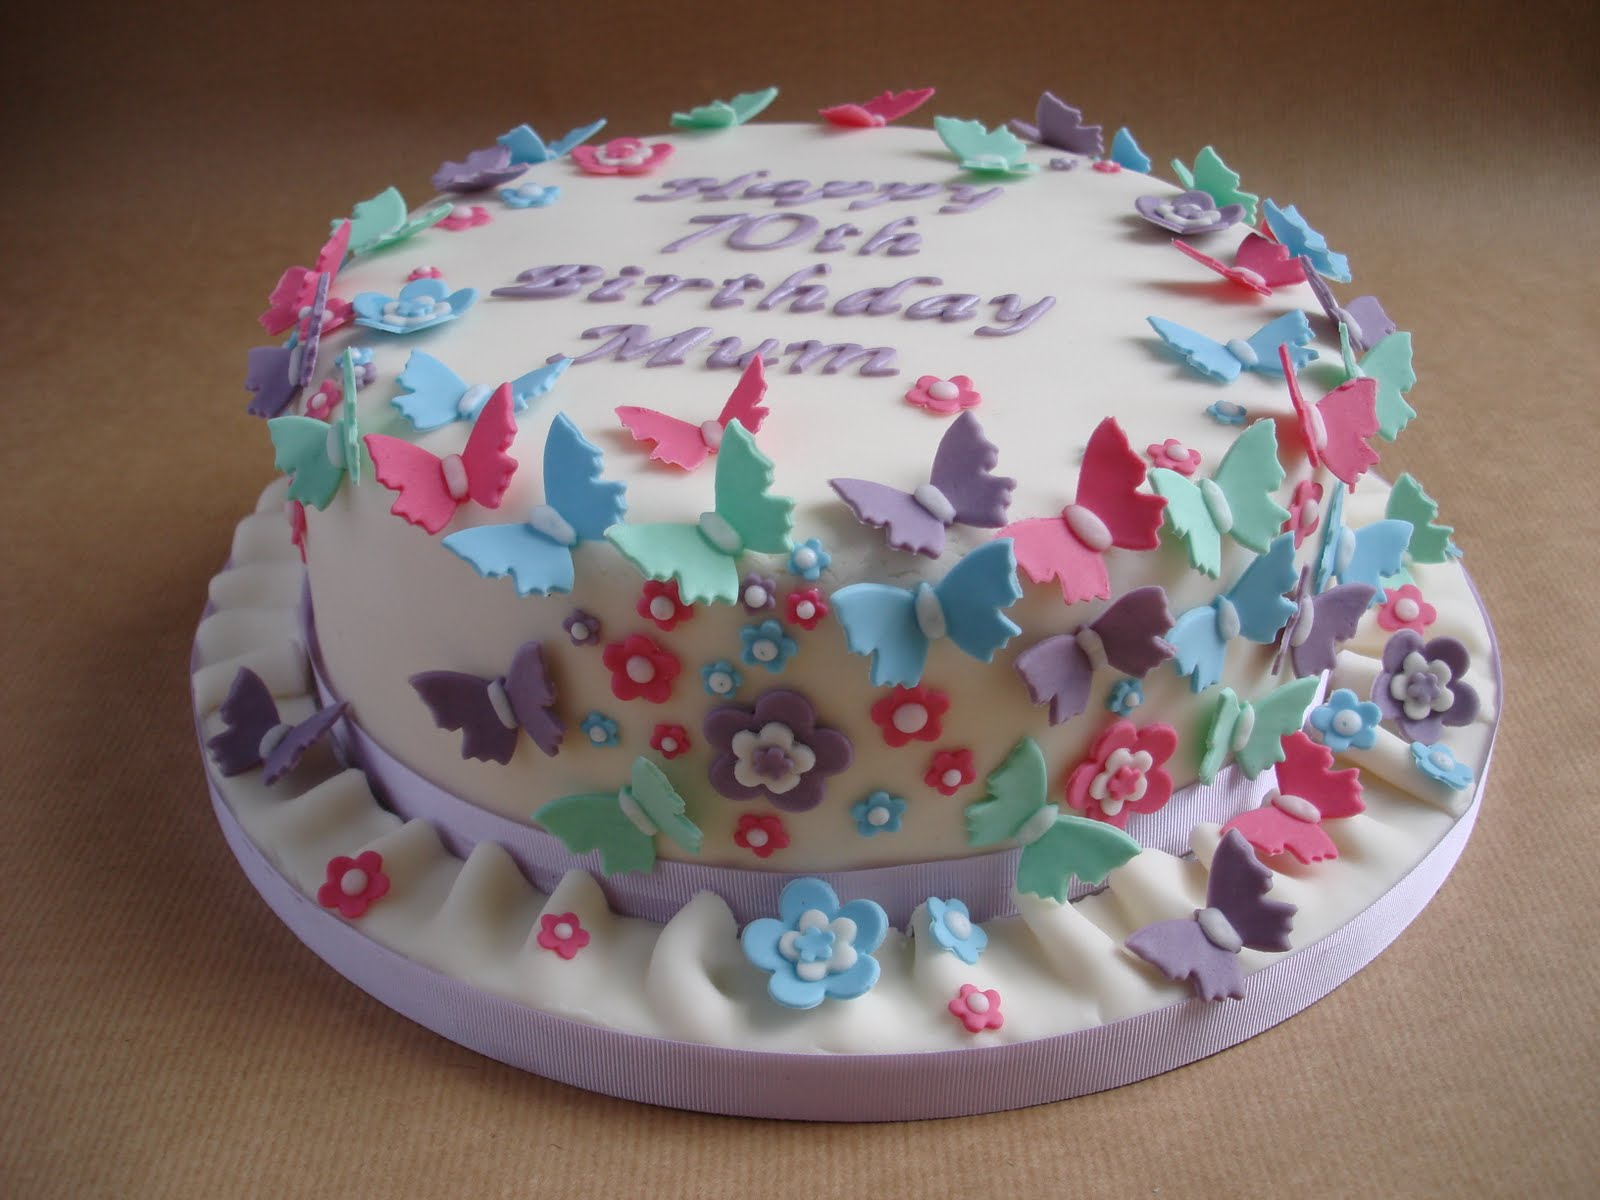 The 3rd Butterfly Cake